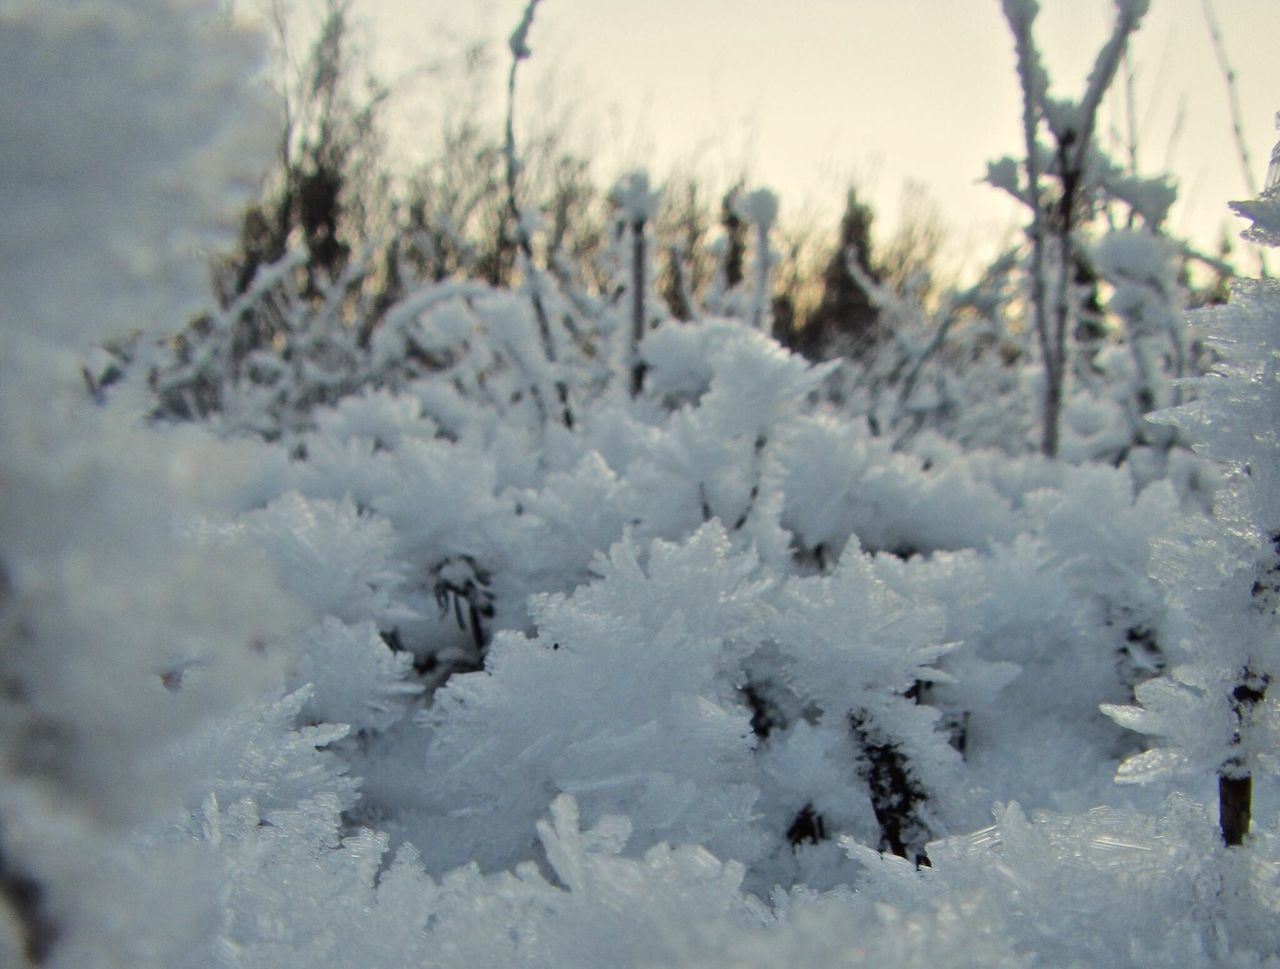 winter, cold temperature, snow, nature, white color, outdoors, weather, day, tree, no people, field, growth, focus on foreground, beauty in nature, plant, close-up, fragility, sky